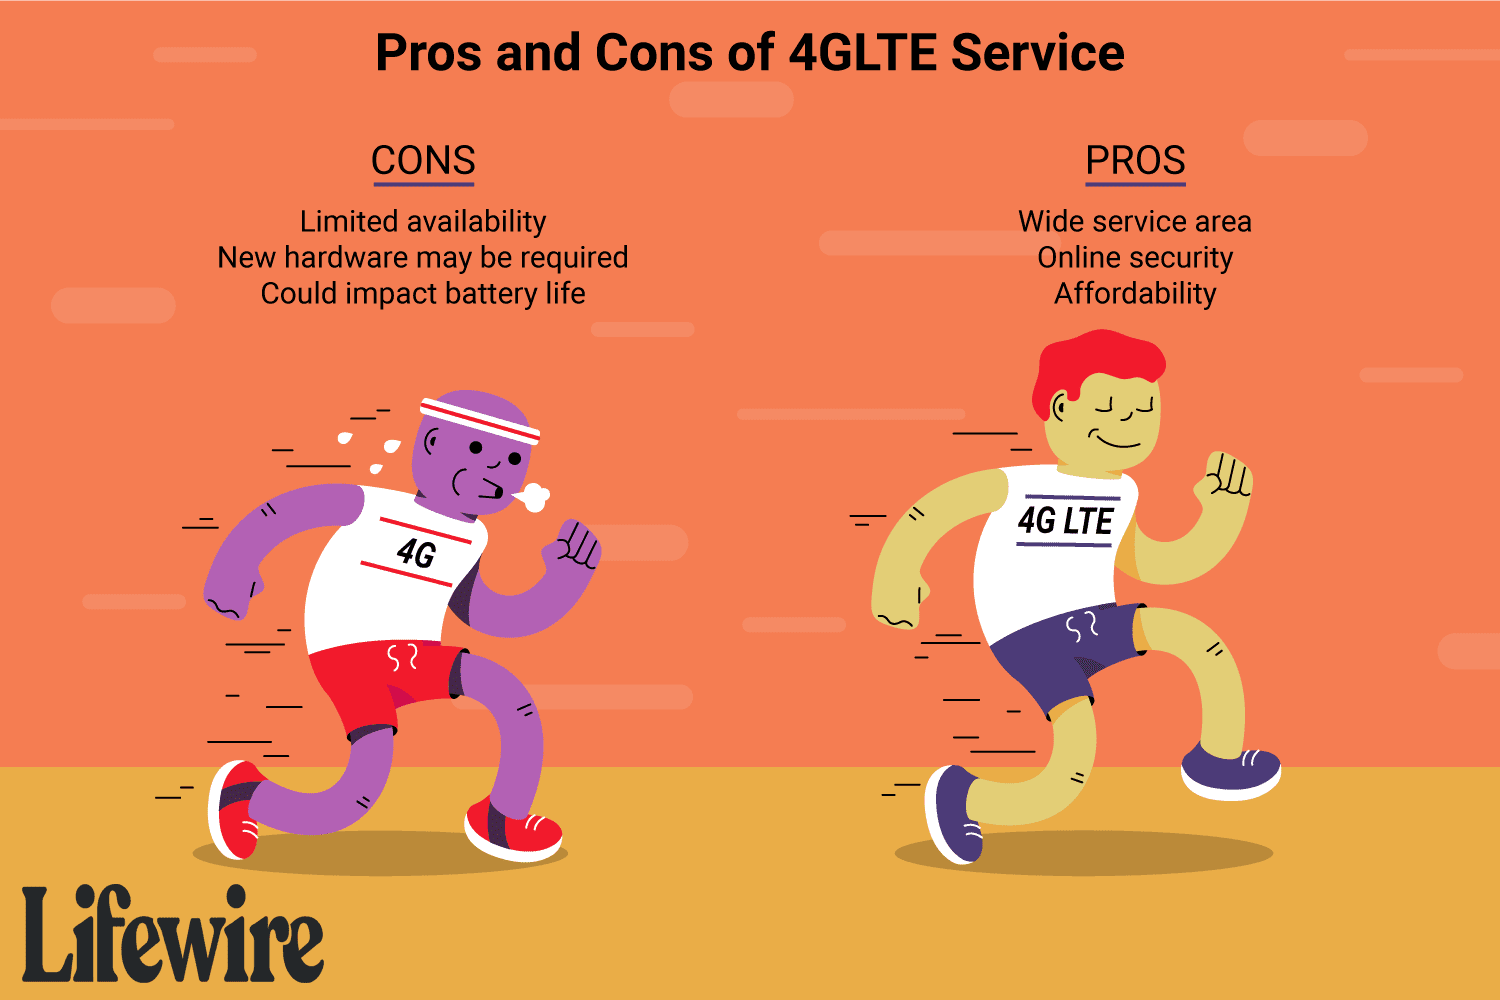 Illustration of the pros and cons of 4G LTE service